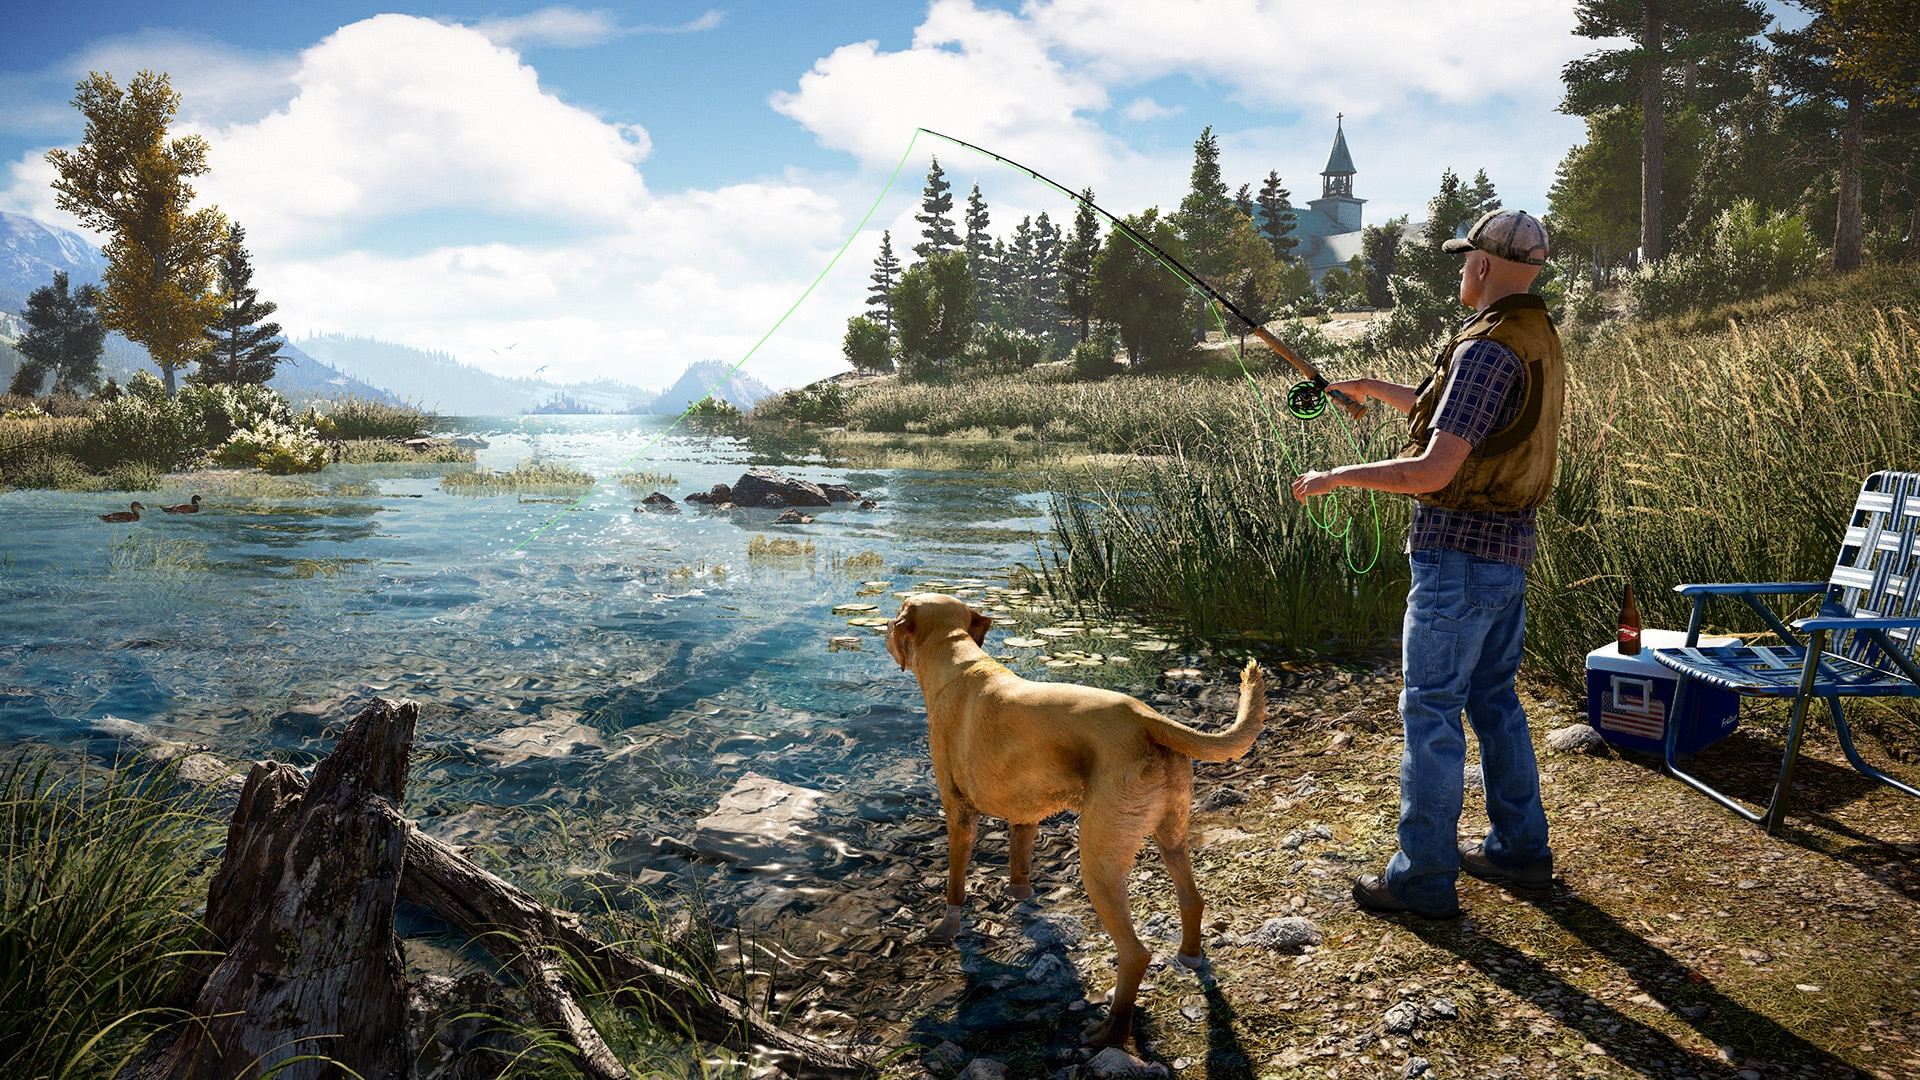 By far the most interesting aspect of Far Cry 5 appears to be its fishing mechanic